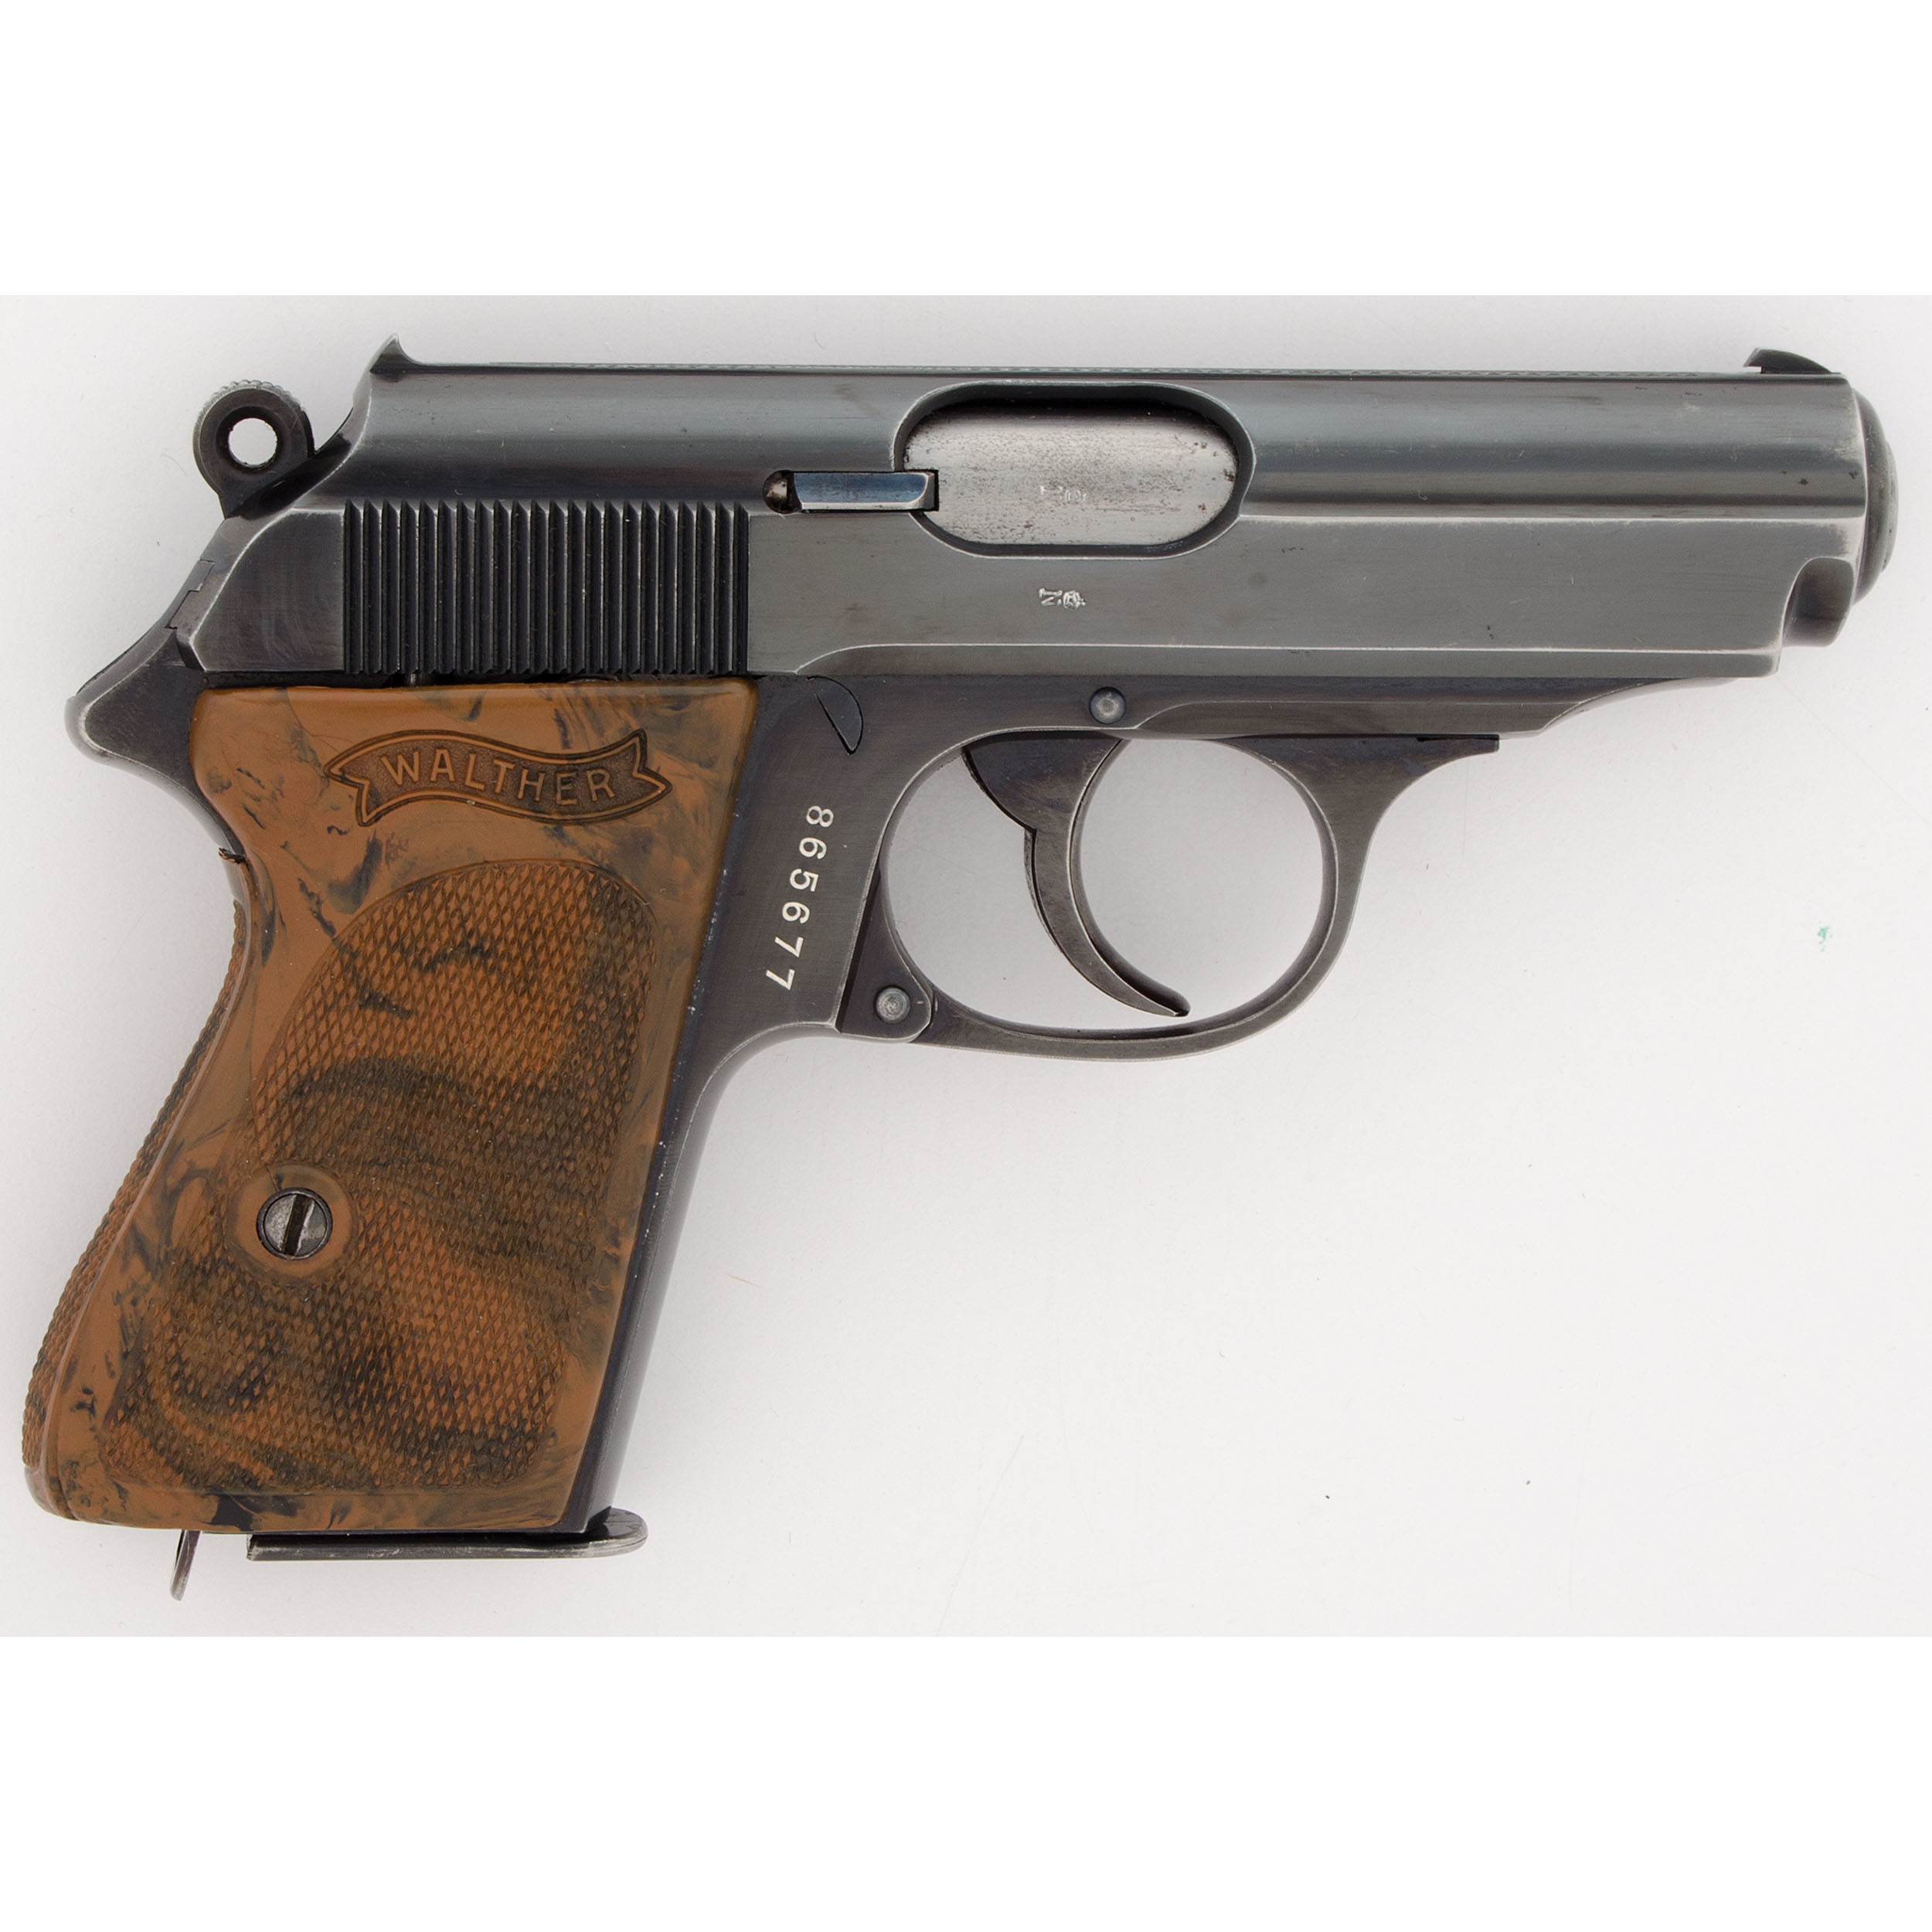 Walther PPK Pistol | Cowan\'s Auction House: The Midwest\'s Most ...